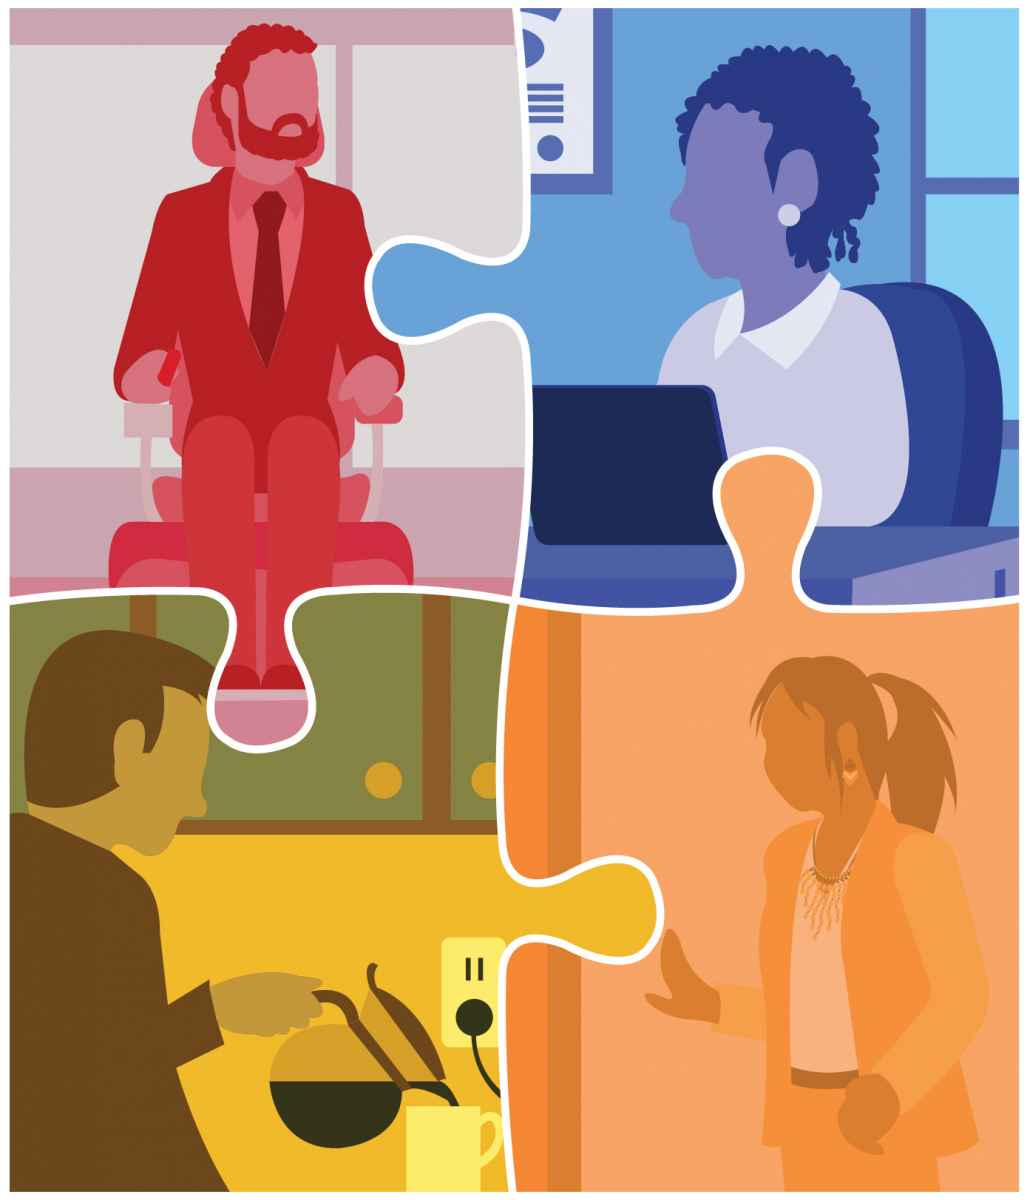 puzzle pieces graphic showing multiple individuals working in different environments